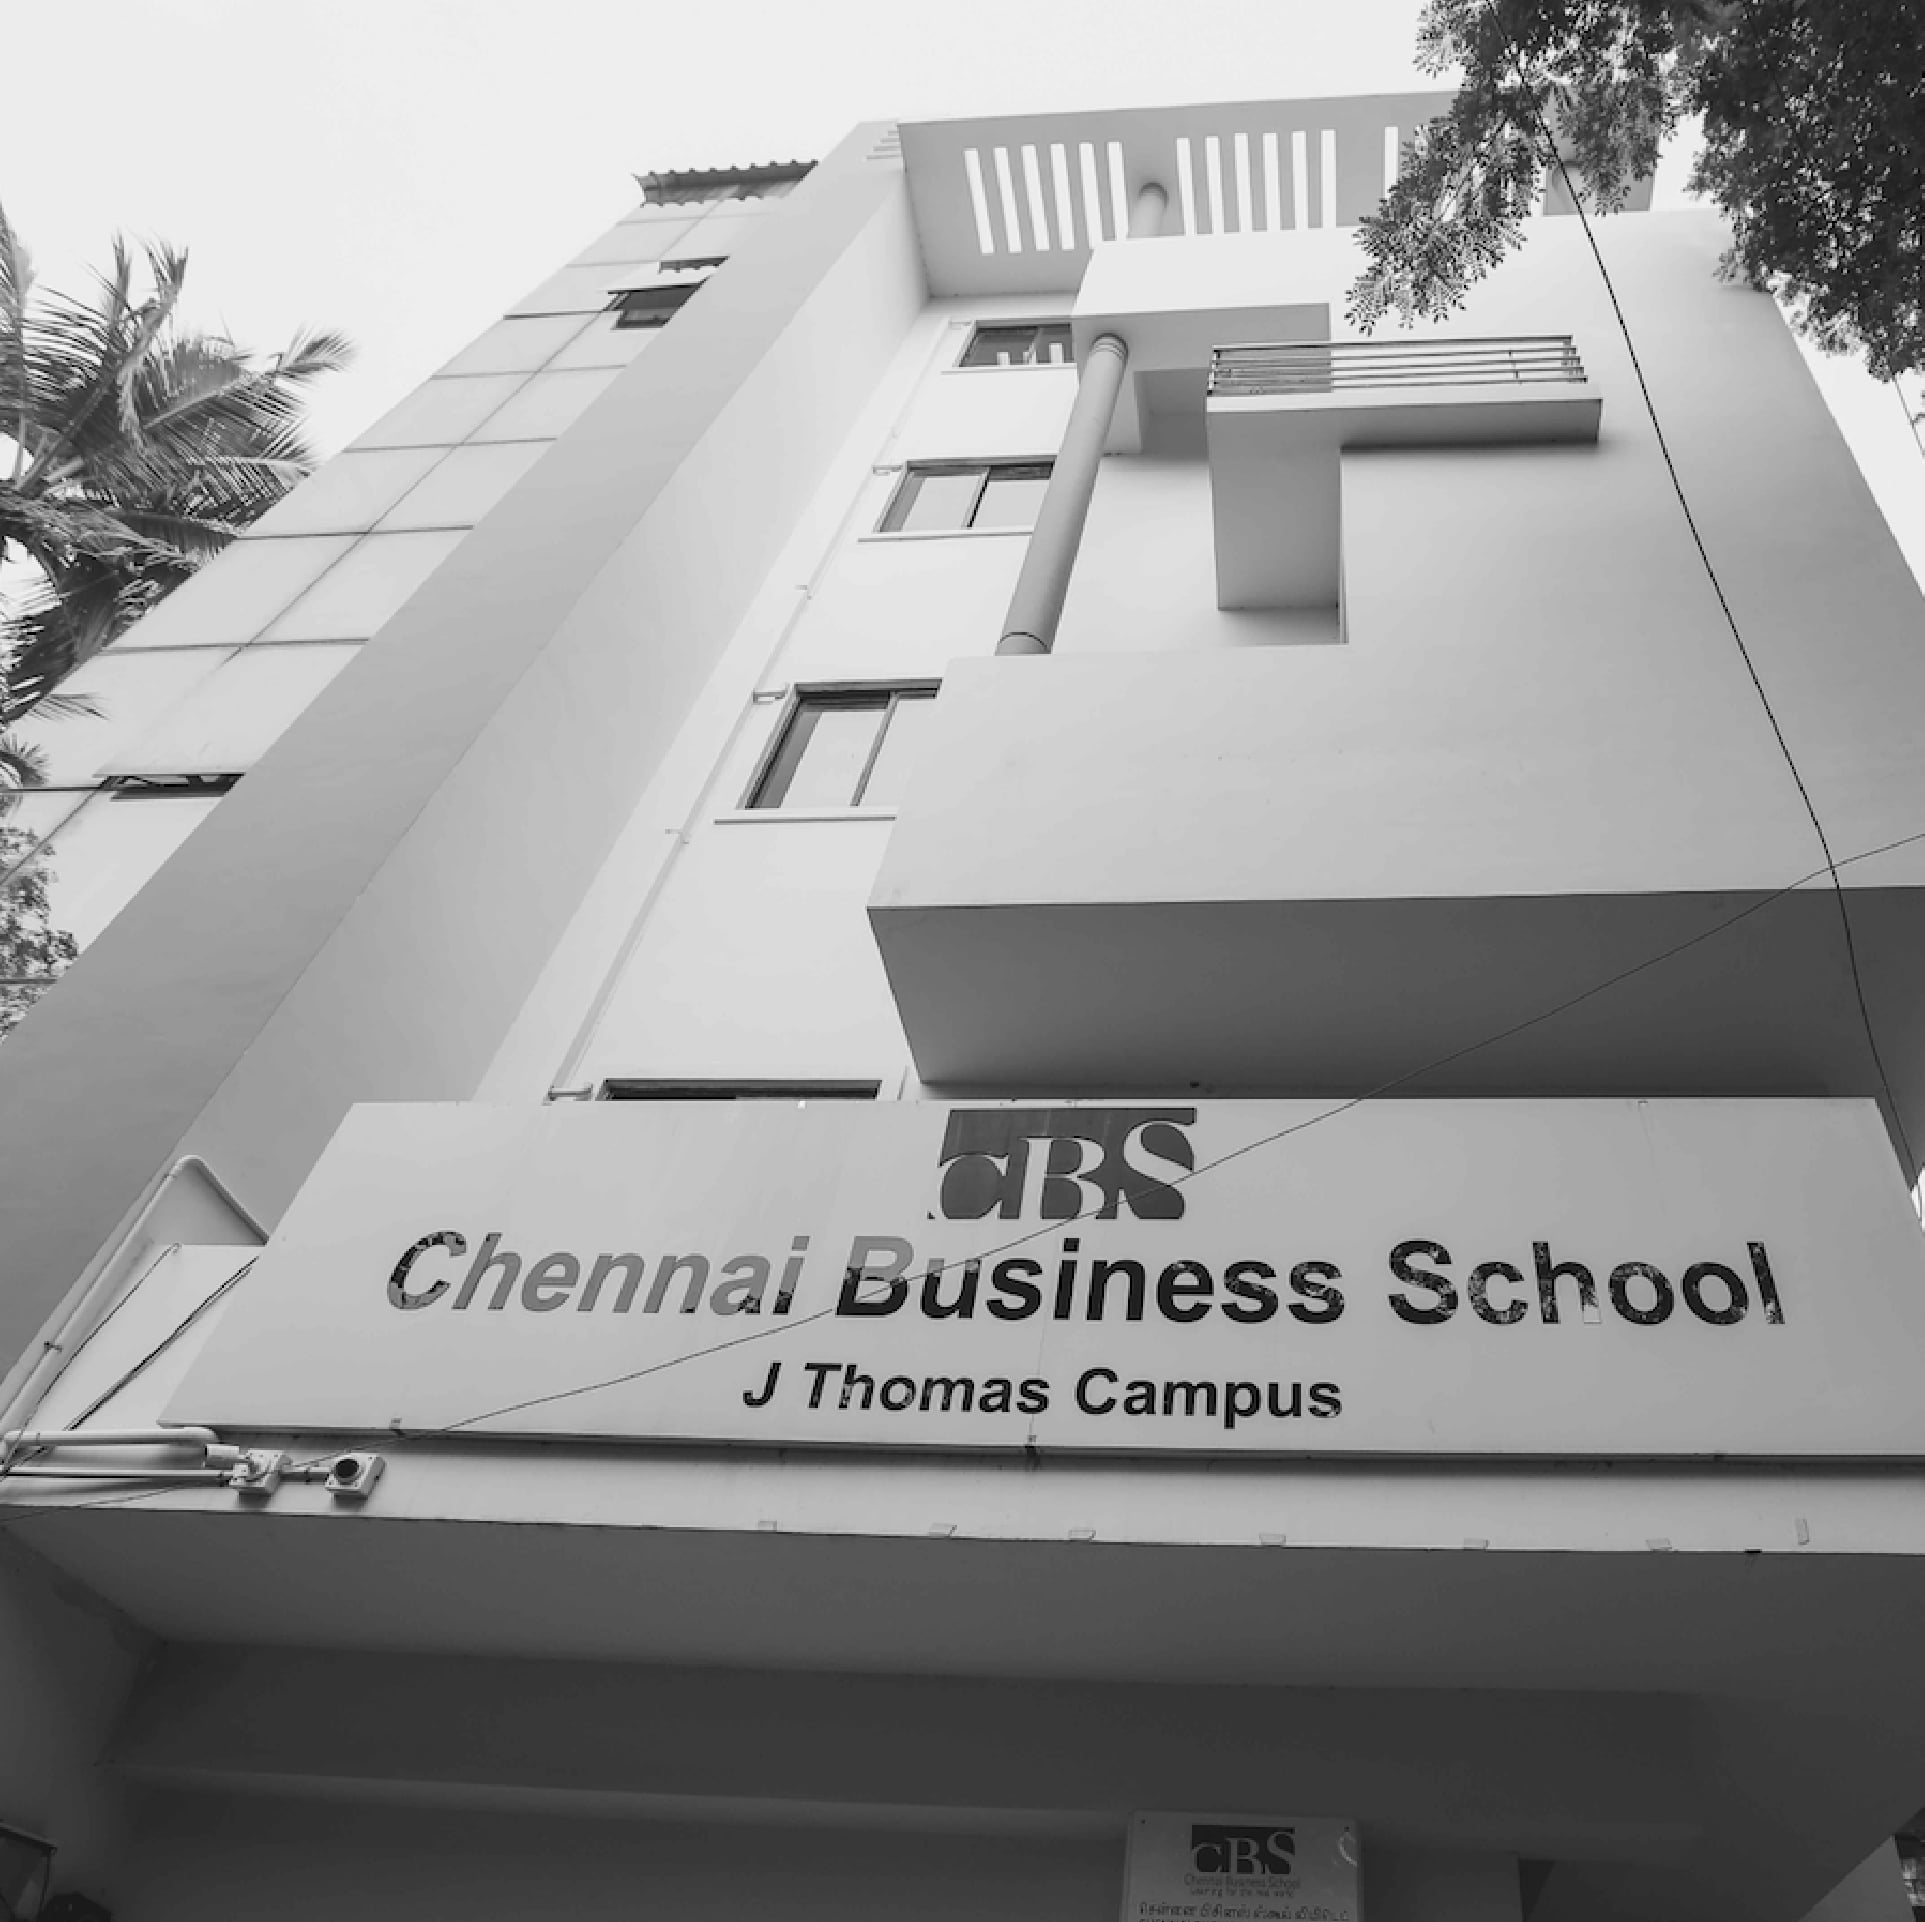 Chennai Business School campus is the top business school in chennai